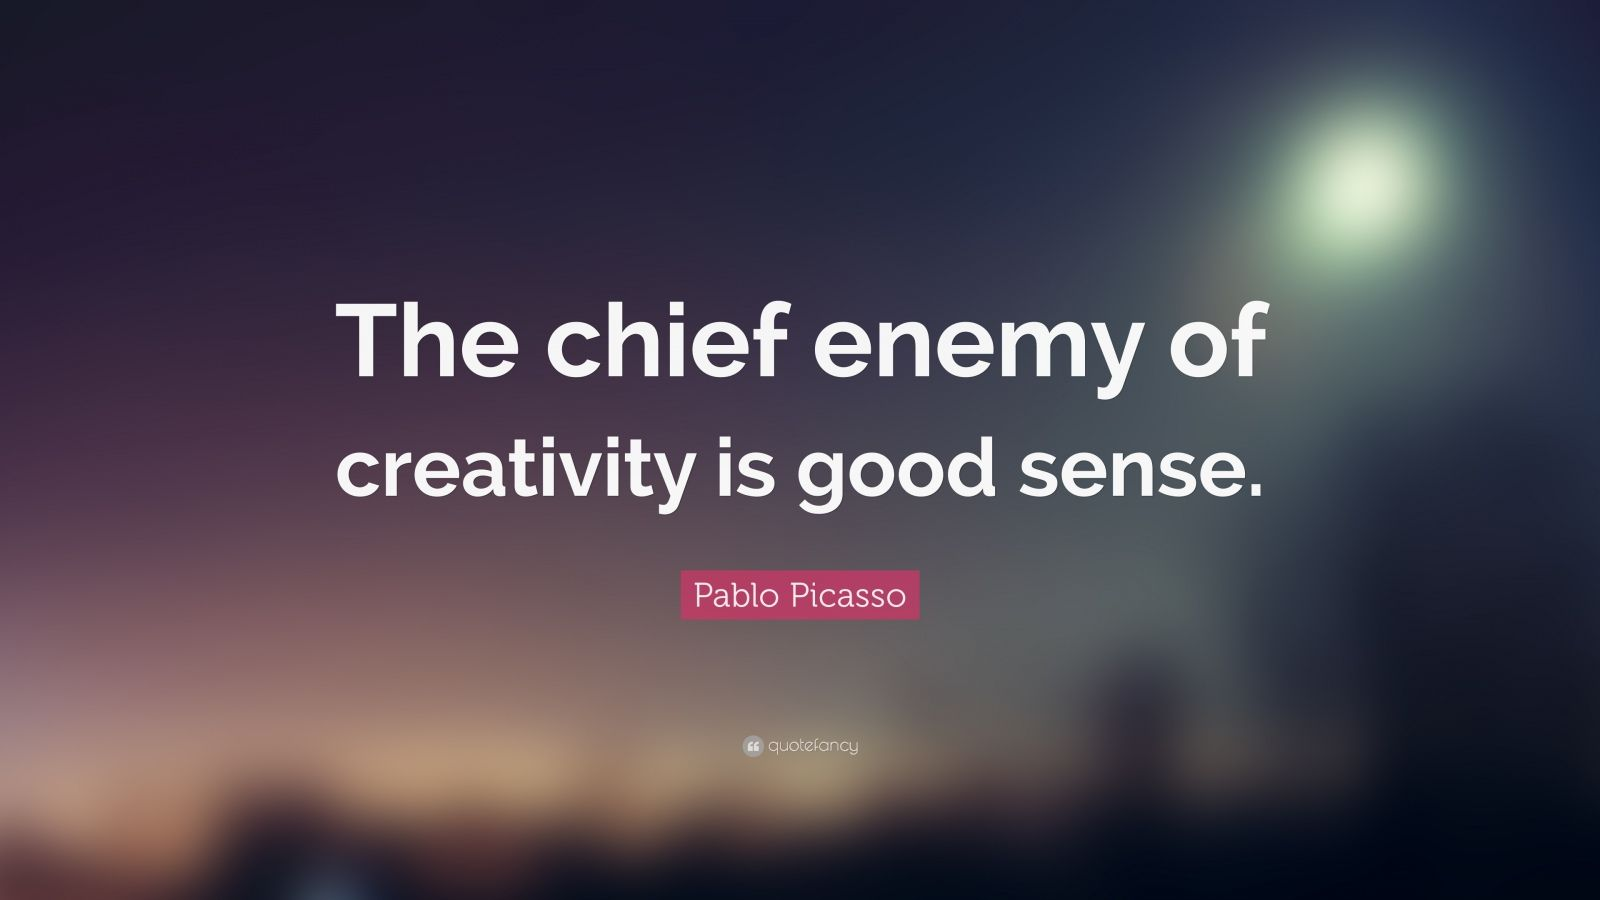 Pablo Picasso Quote: The chief enemy of creativity is good sense ...